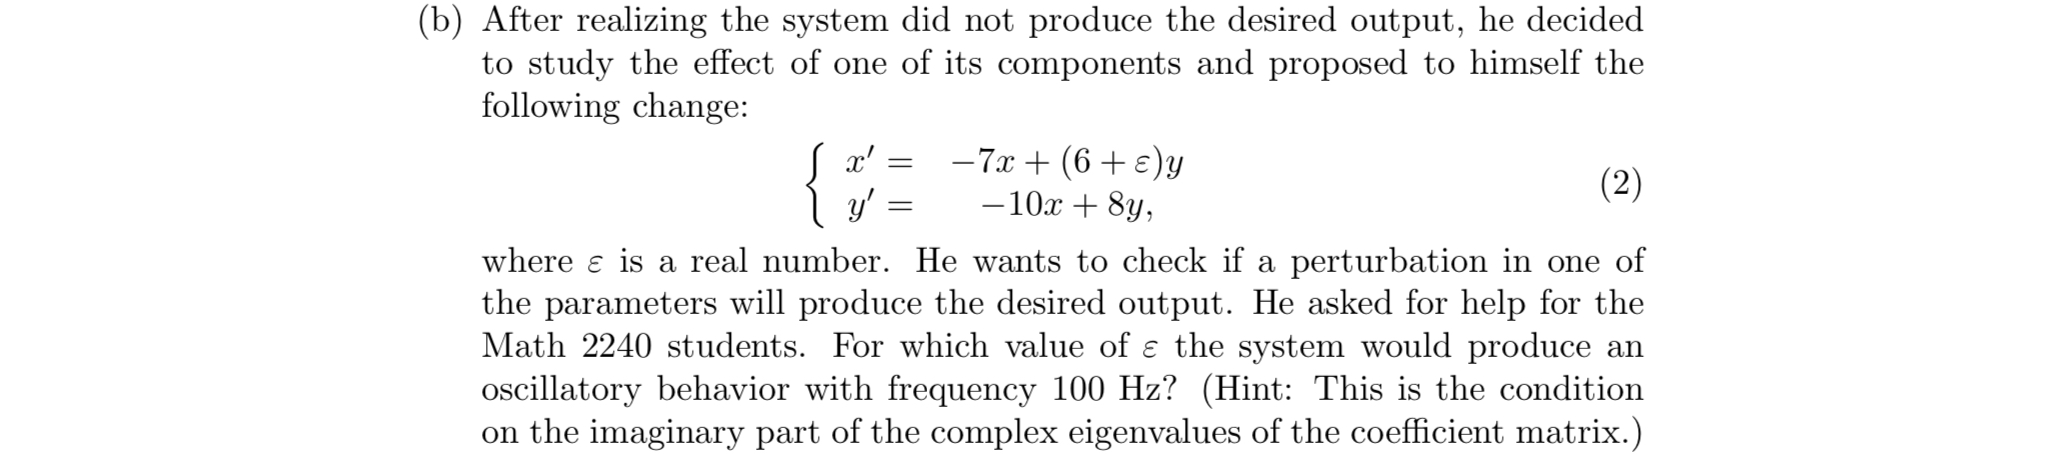 (b) After realizing the system did not produce the desired output, he decided f its components and proposed to himselfthe to study the effect of one o following change 10x +8y where ε is a real number. He wants to check if a perturbation in one of the parameters will produce the desired output. He asked for help for the Math 2240 students. For which value of ε the system would produce an oscillatory behavior with frequency 100 Hz? (Hint: This is the condition on the imaginary part of the complex eigenvalues of the coefficient matrix.)